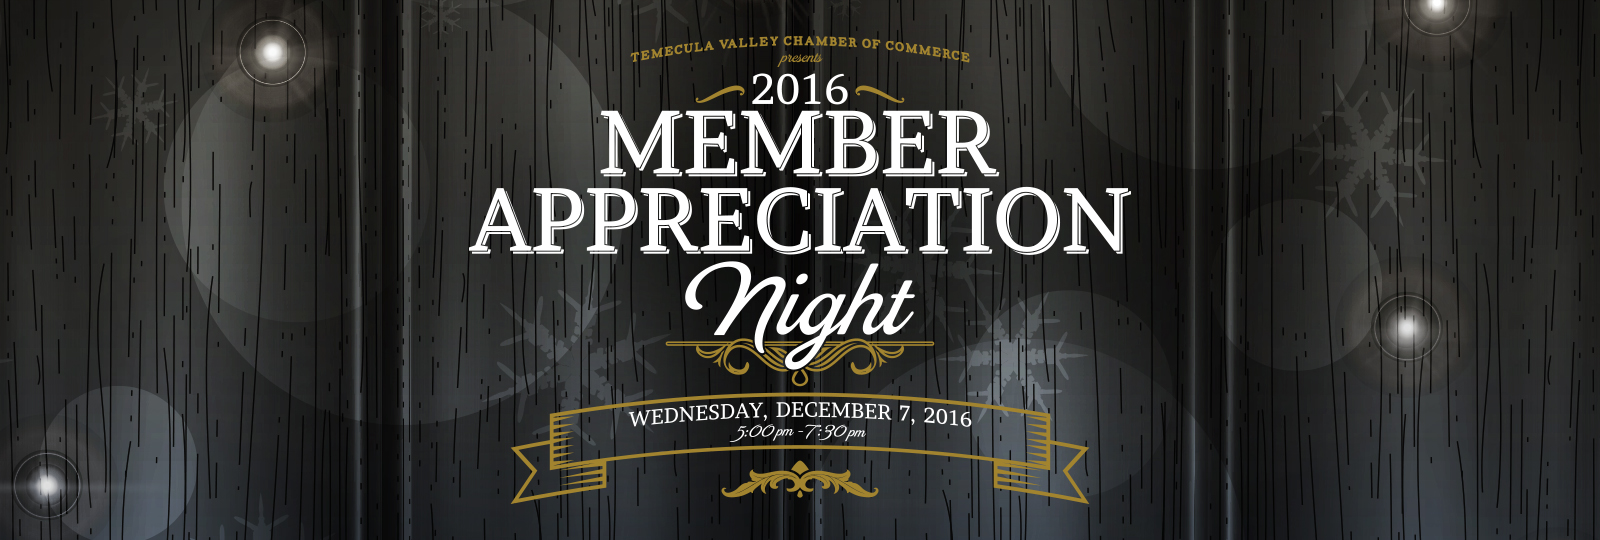 tvcc_2016_member_appreciation_slider1